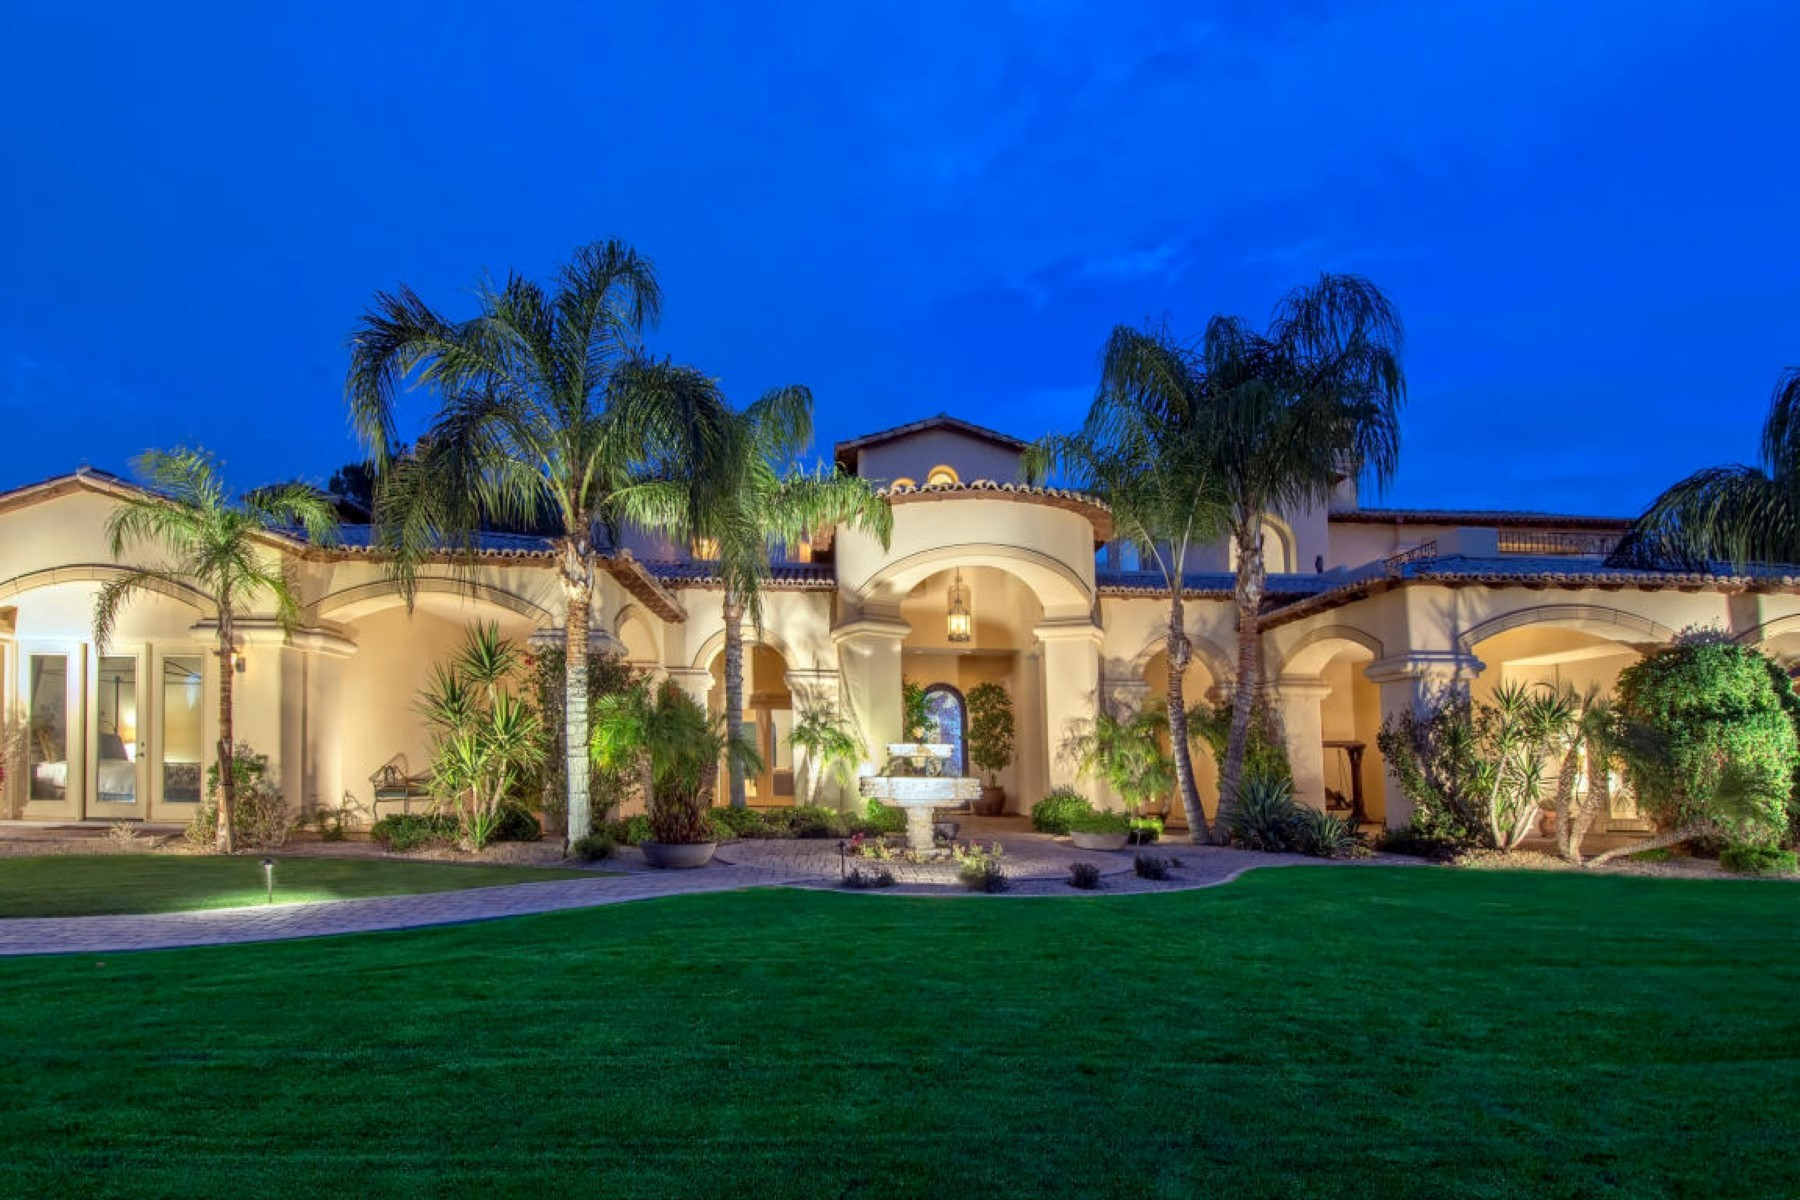 sales property at One of a kind custom built home in the gated enclave community of Oakwood Hills